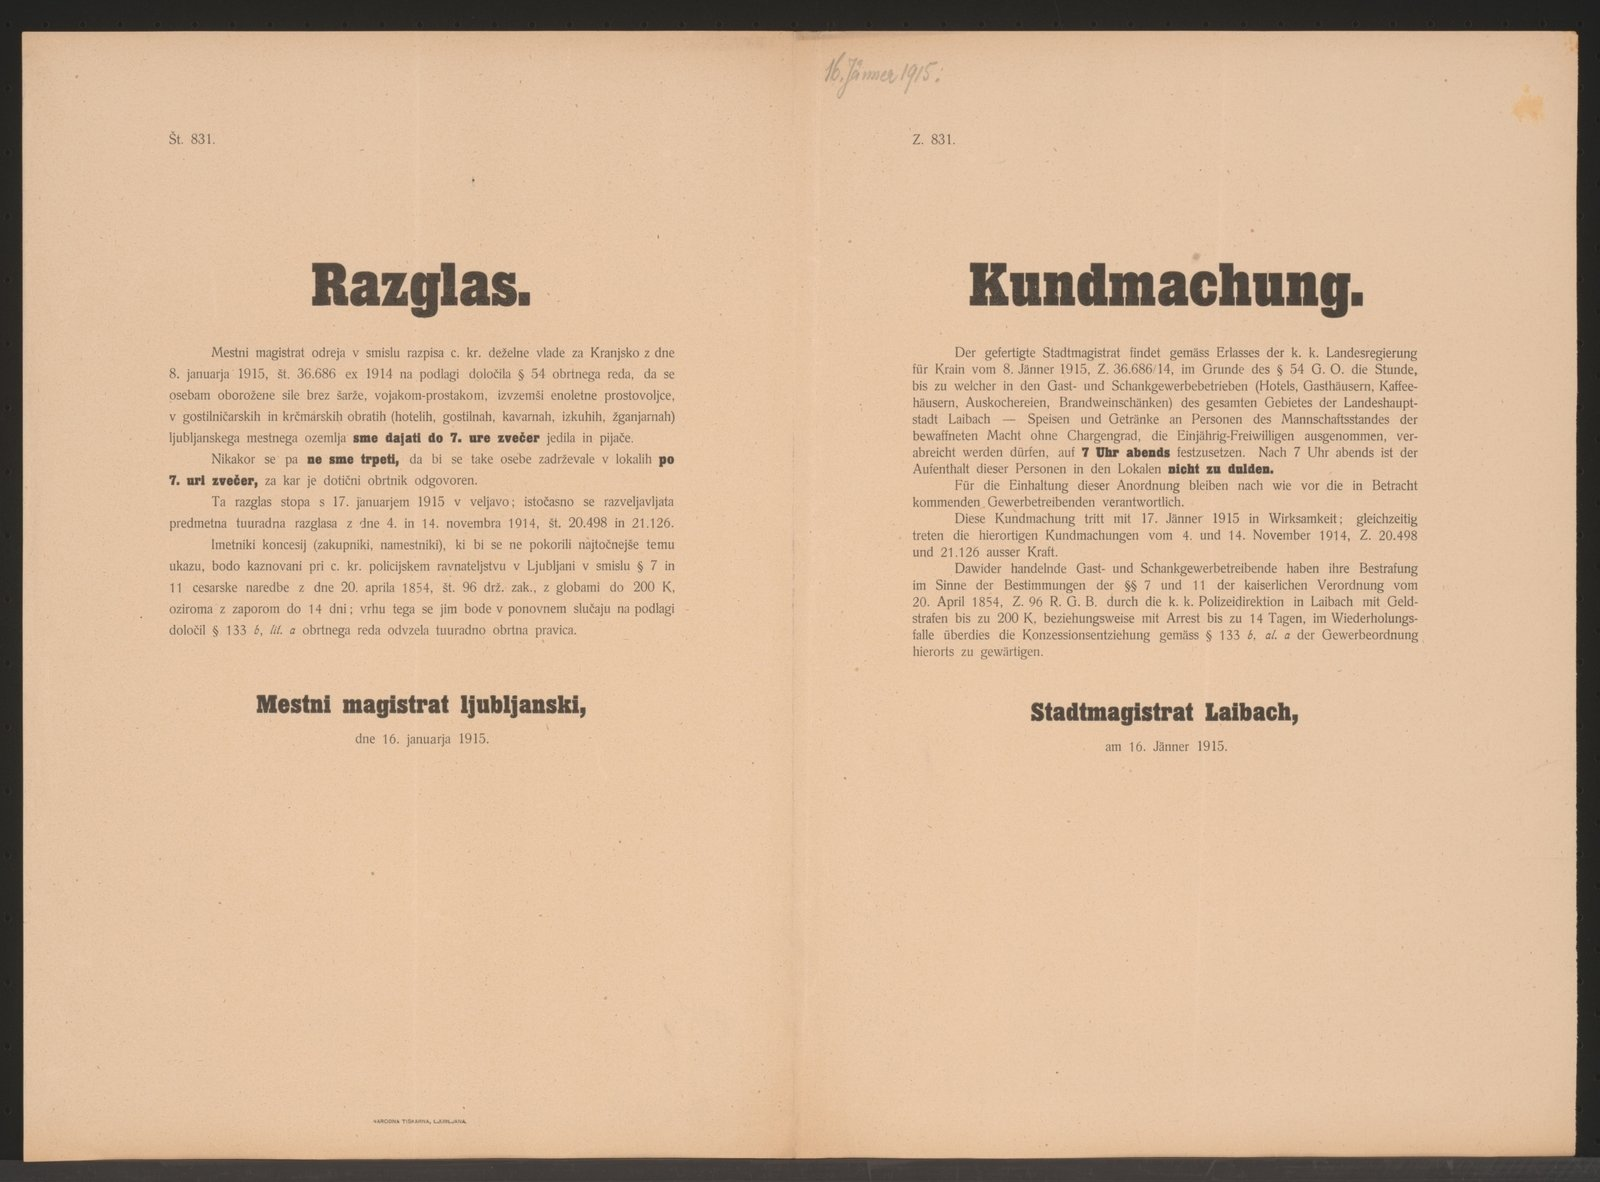 Regulation of hosting soldiers behind the lines, 1915-01-16 Ljubljana, Österreichische Nationalbibliothek - Austrian National Library, Public Domain Mark